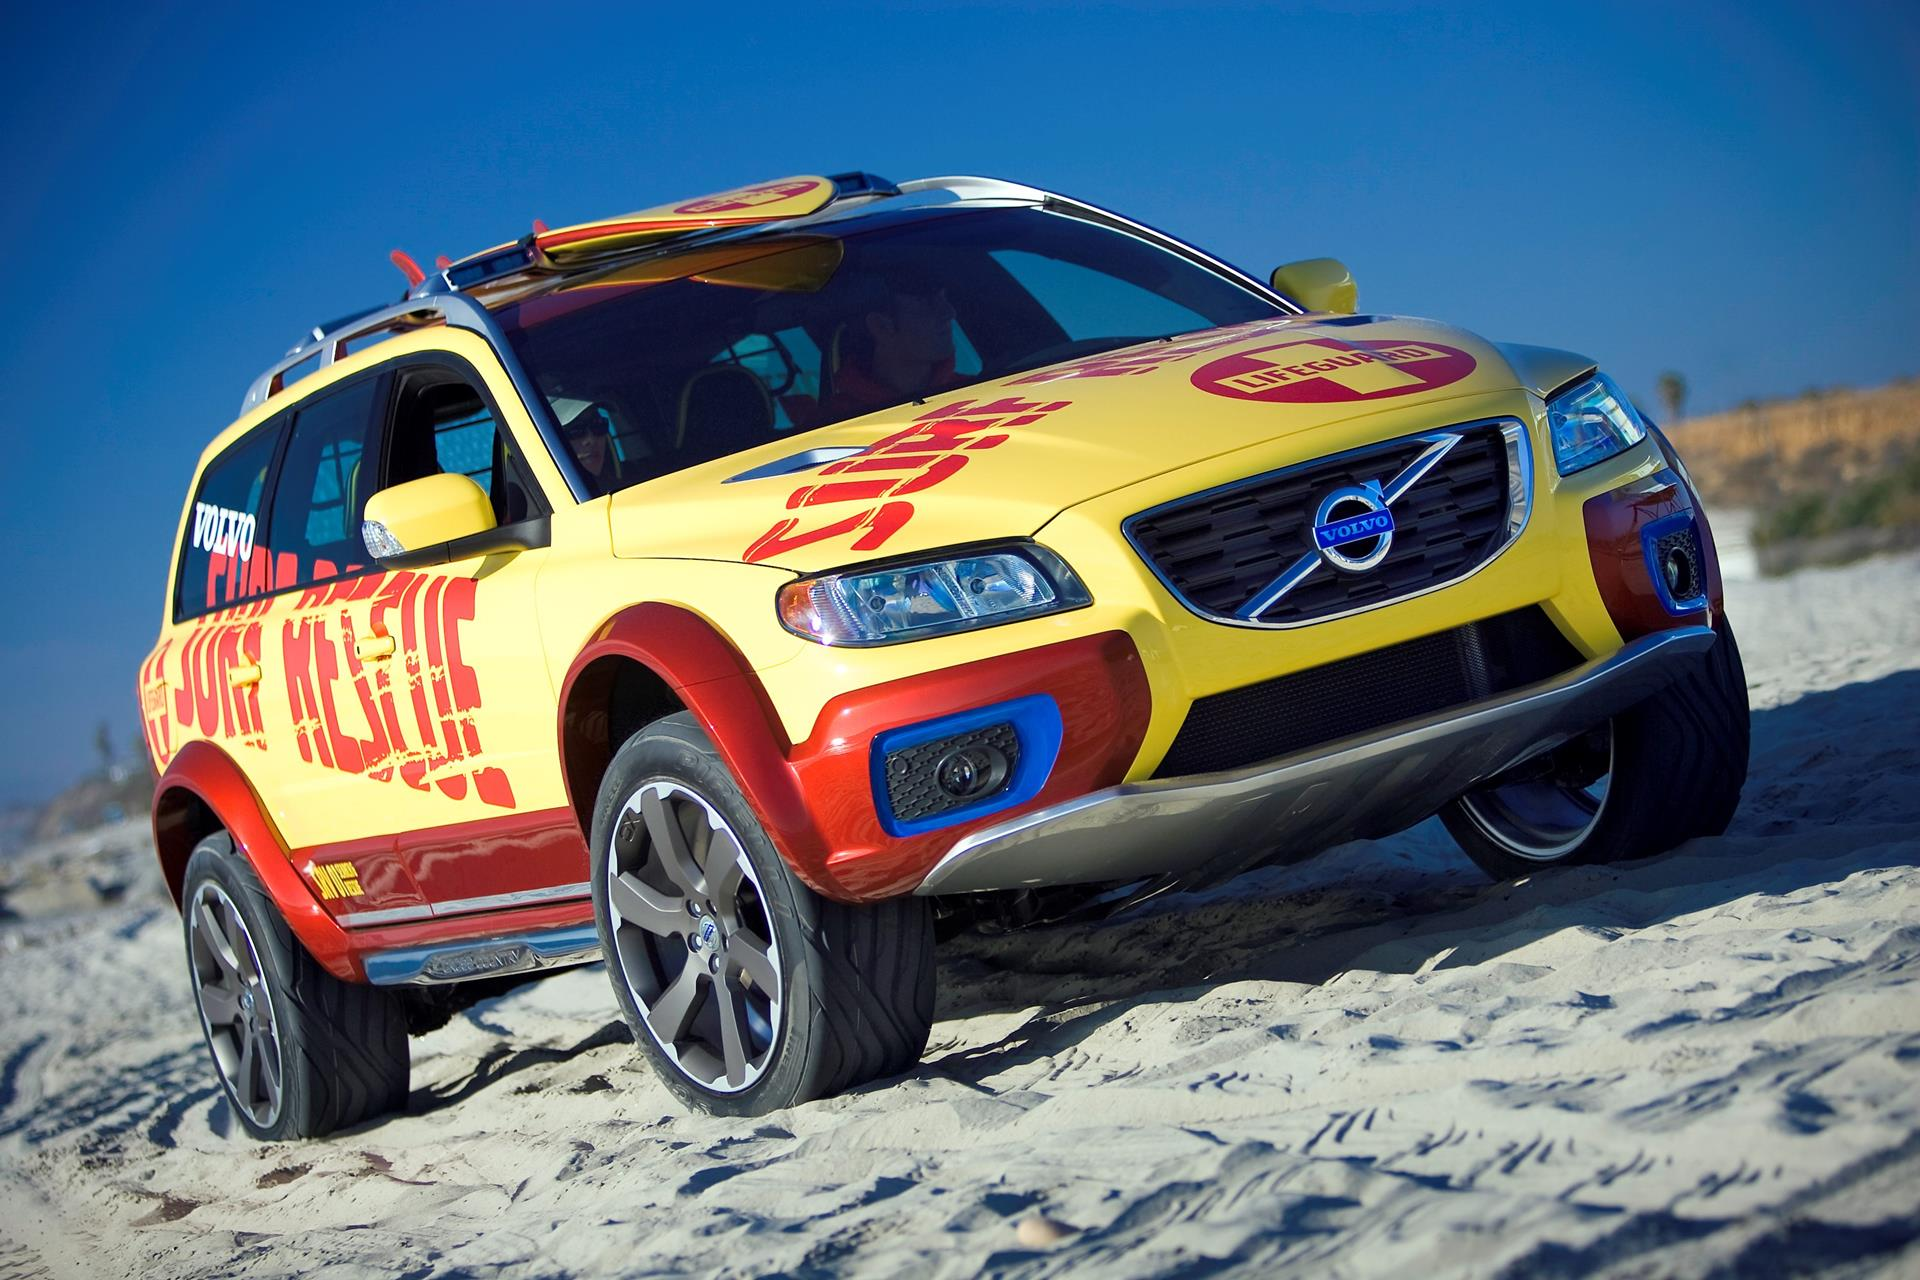 2007 volvo xc70 surf rescue safety concept pictures history value research news. Black Bedroom Furniture Sets. Home Design Ideas